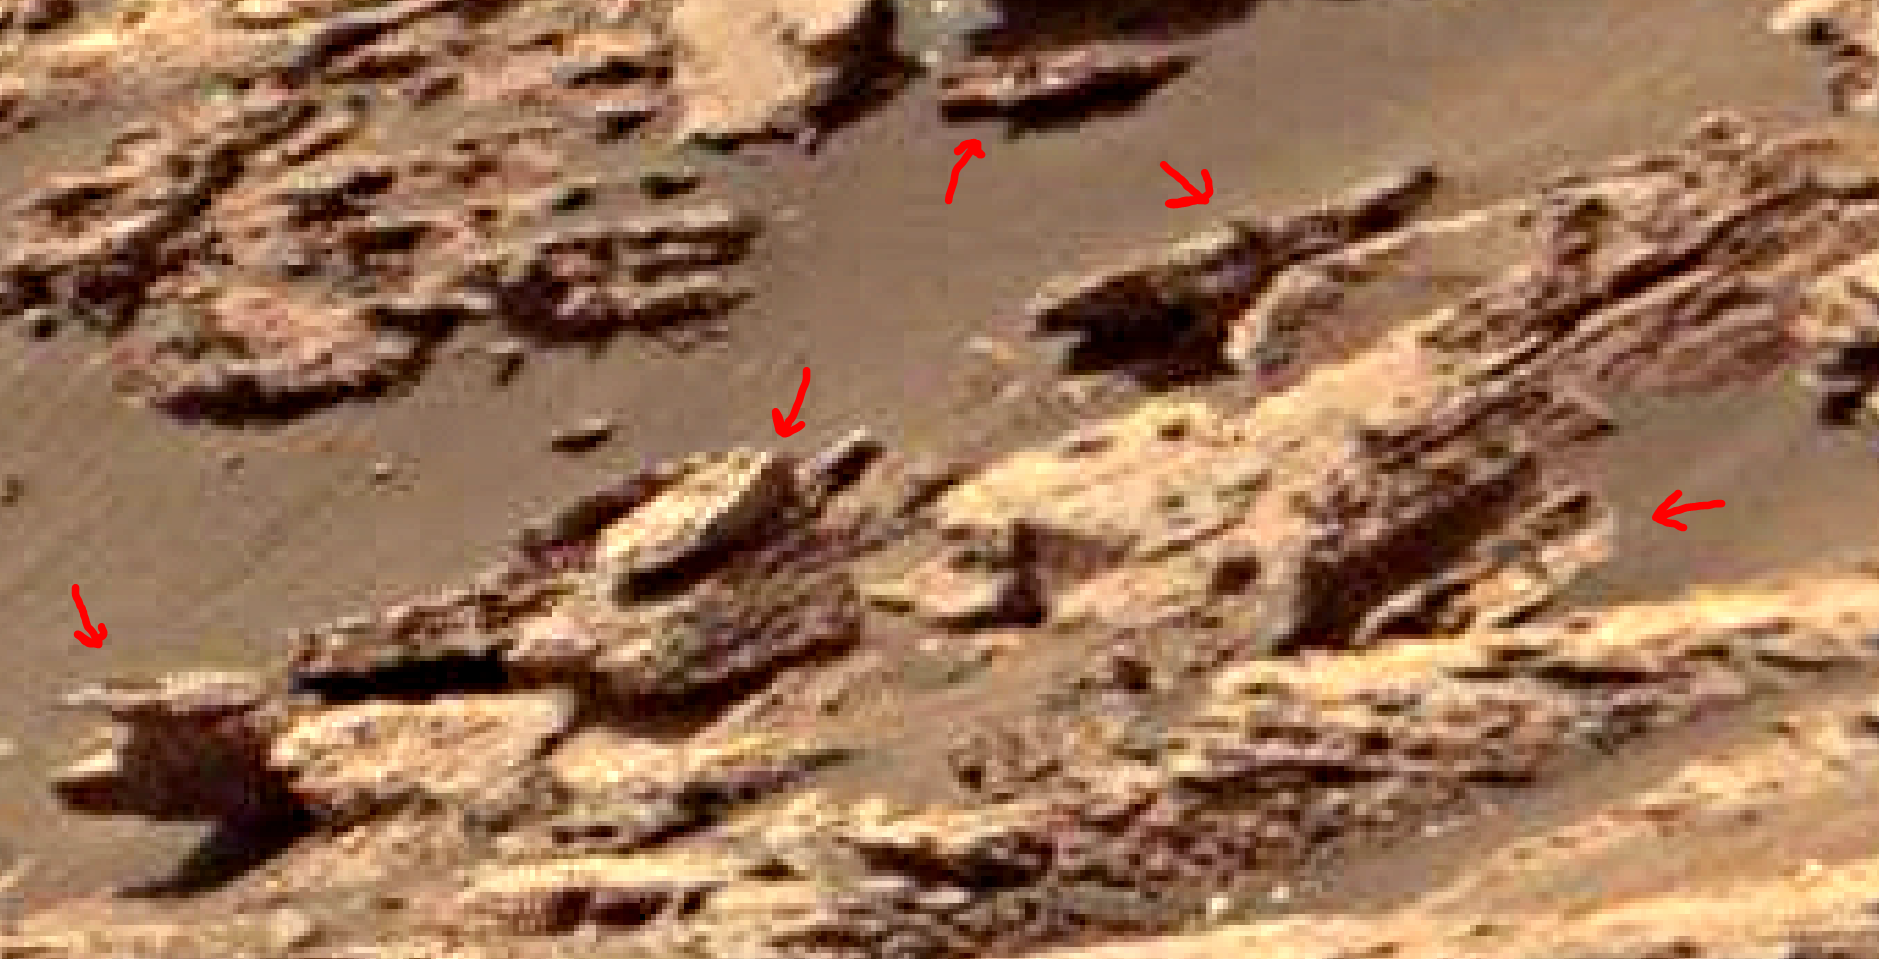 mars-sol-1493-anomaly-artifacts-2a-was-life-on-mars